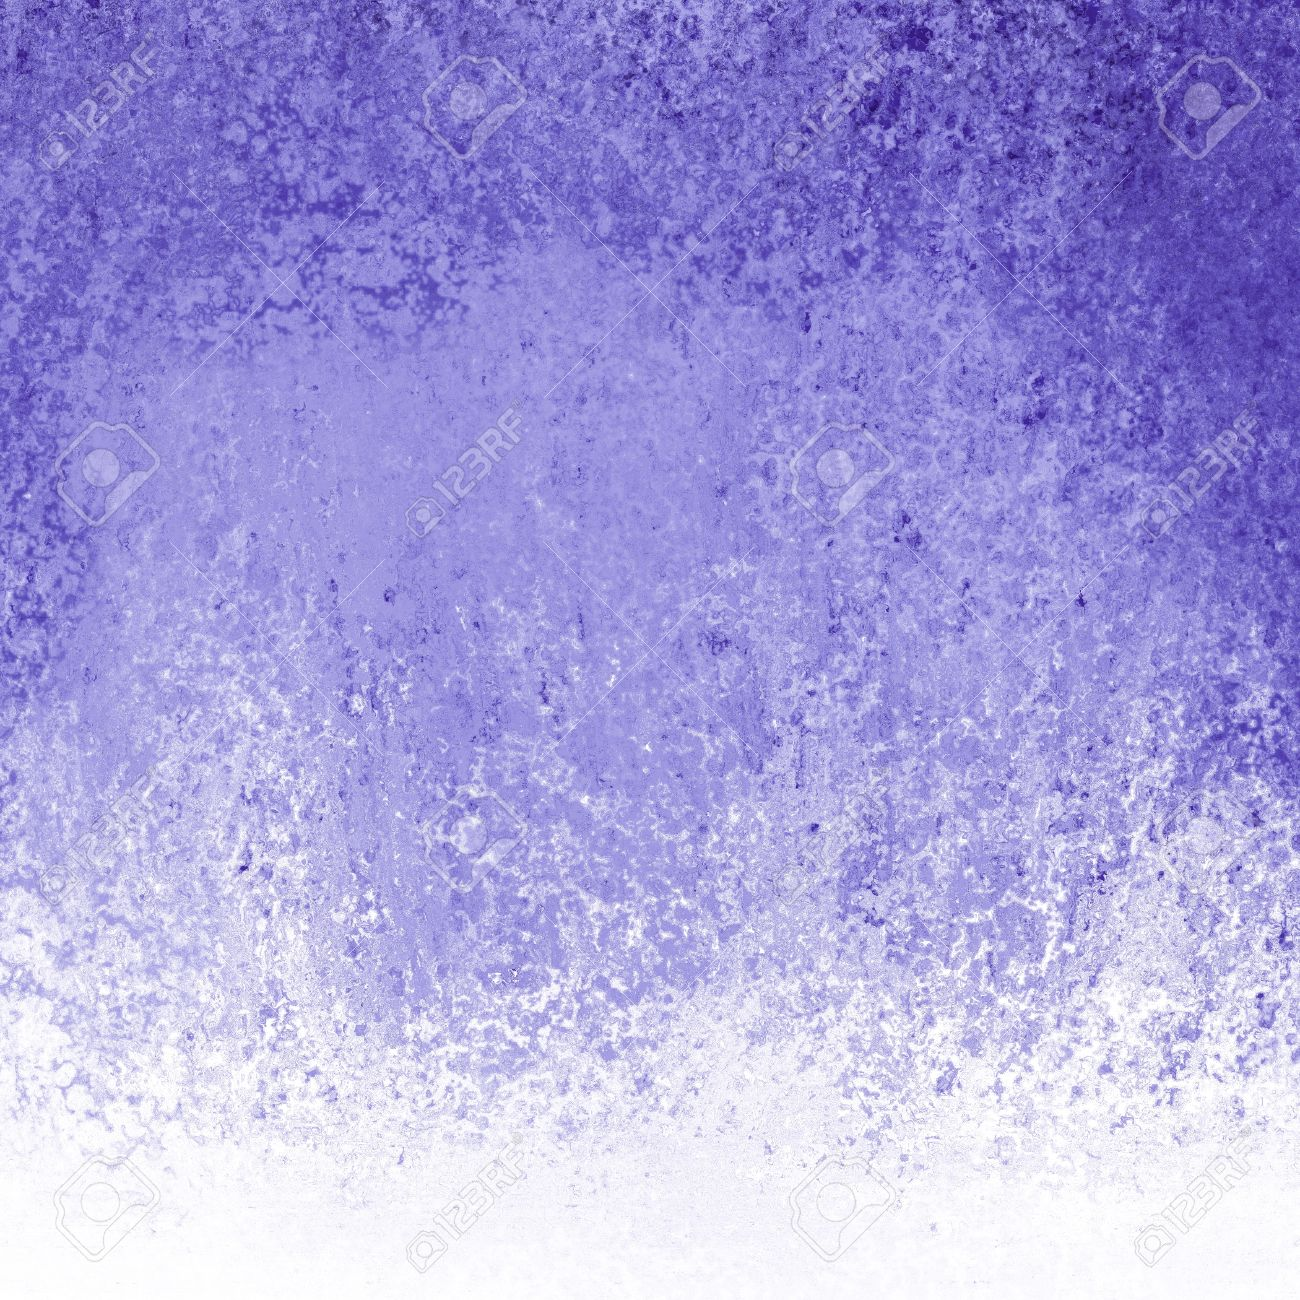 Cool Blue Paint Cool Purple Blue Background White Grunge Border Texture With